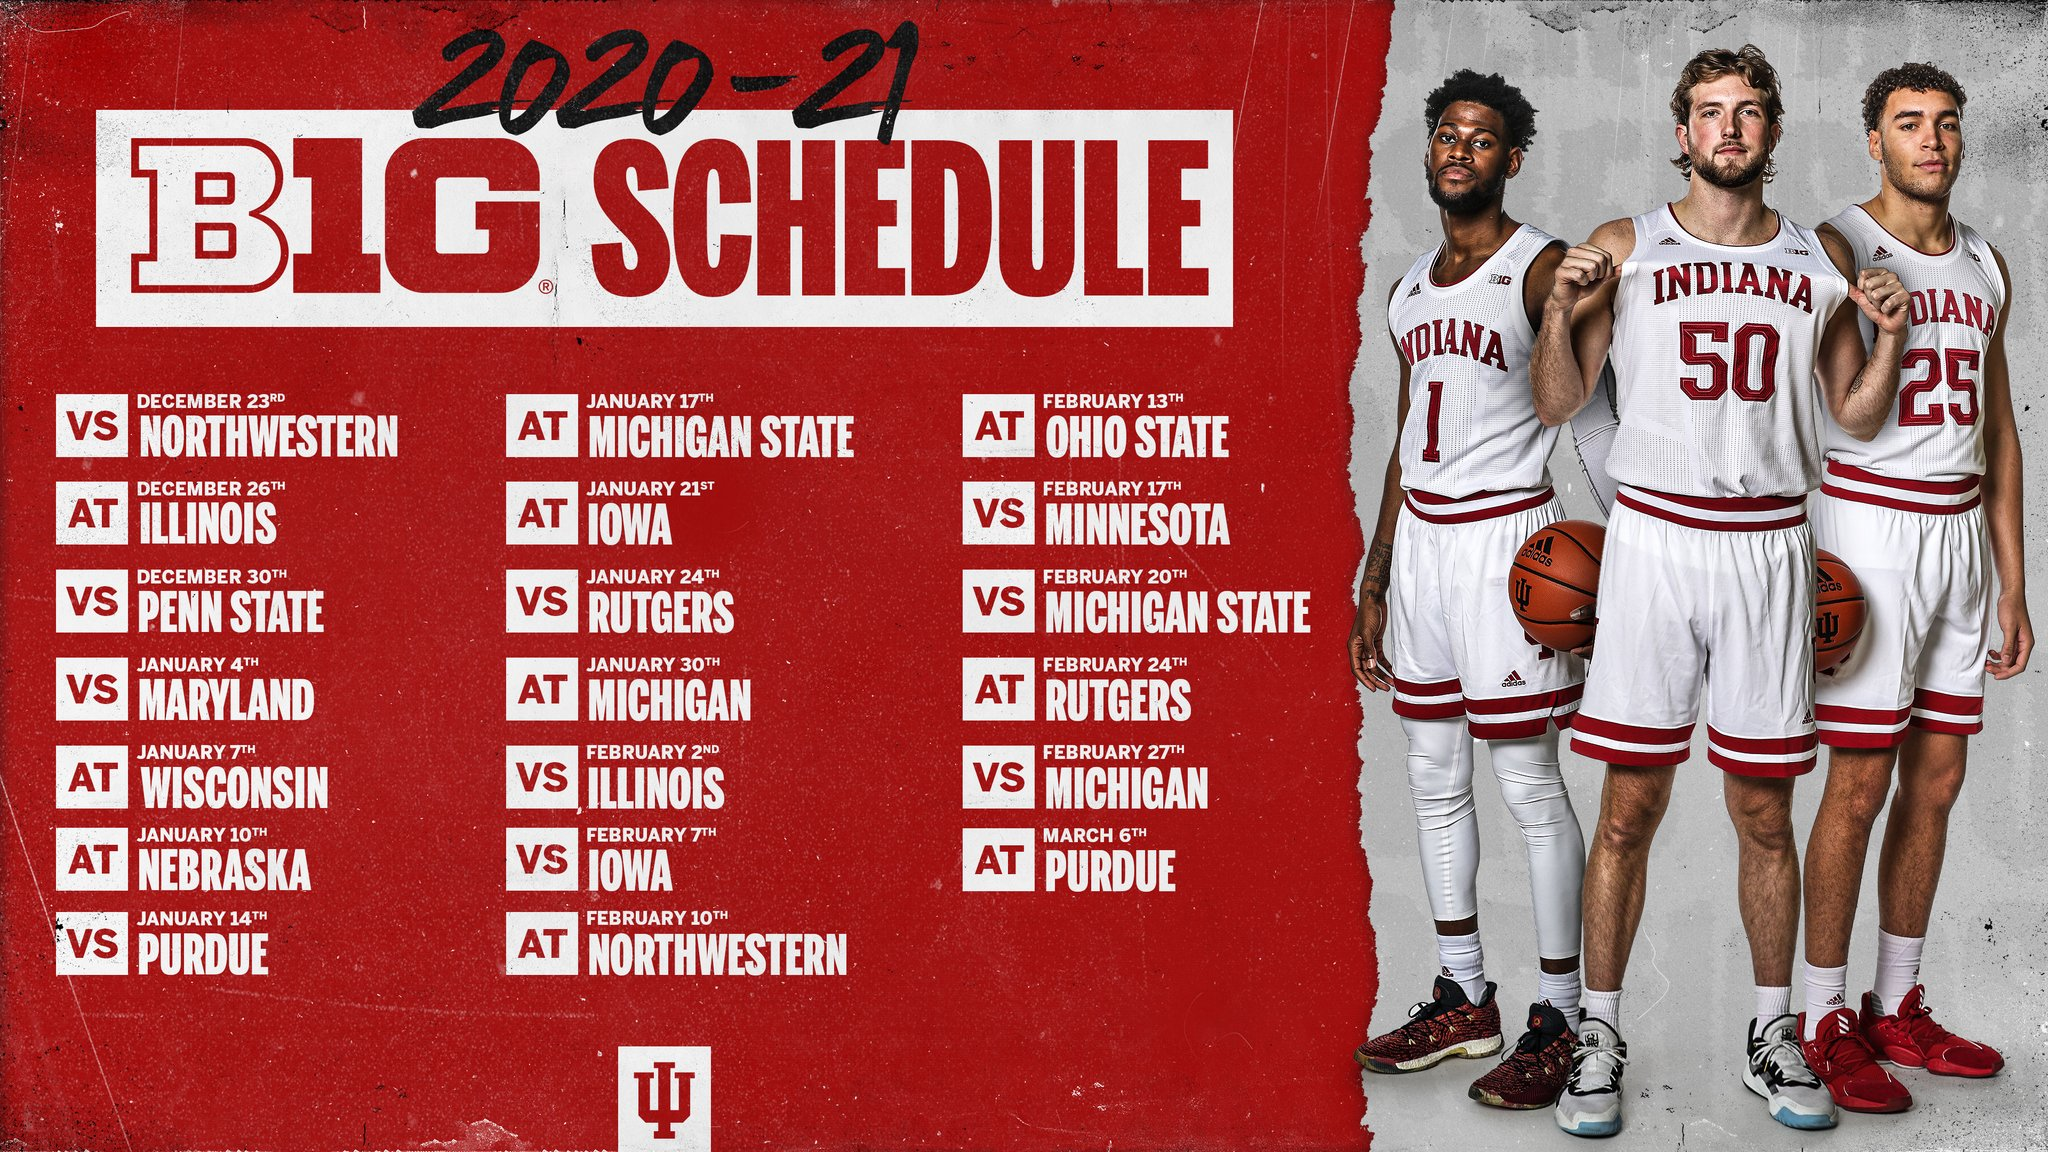 Indiana University Calendar 2022.Iu Basketball The Complete 2020 21 Schedule Is Here The Daily Hoosier